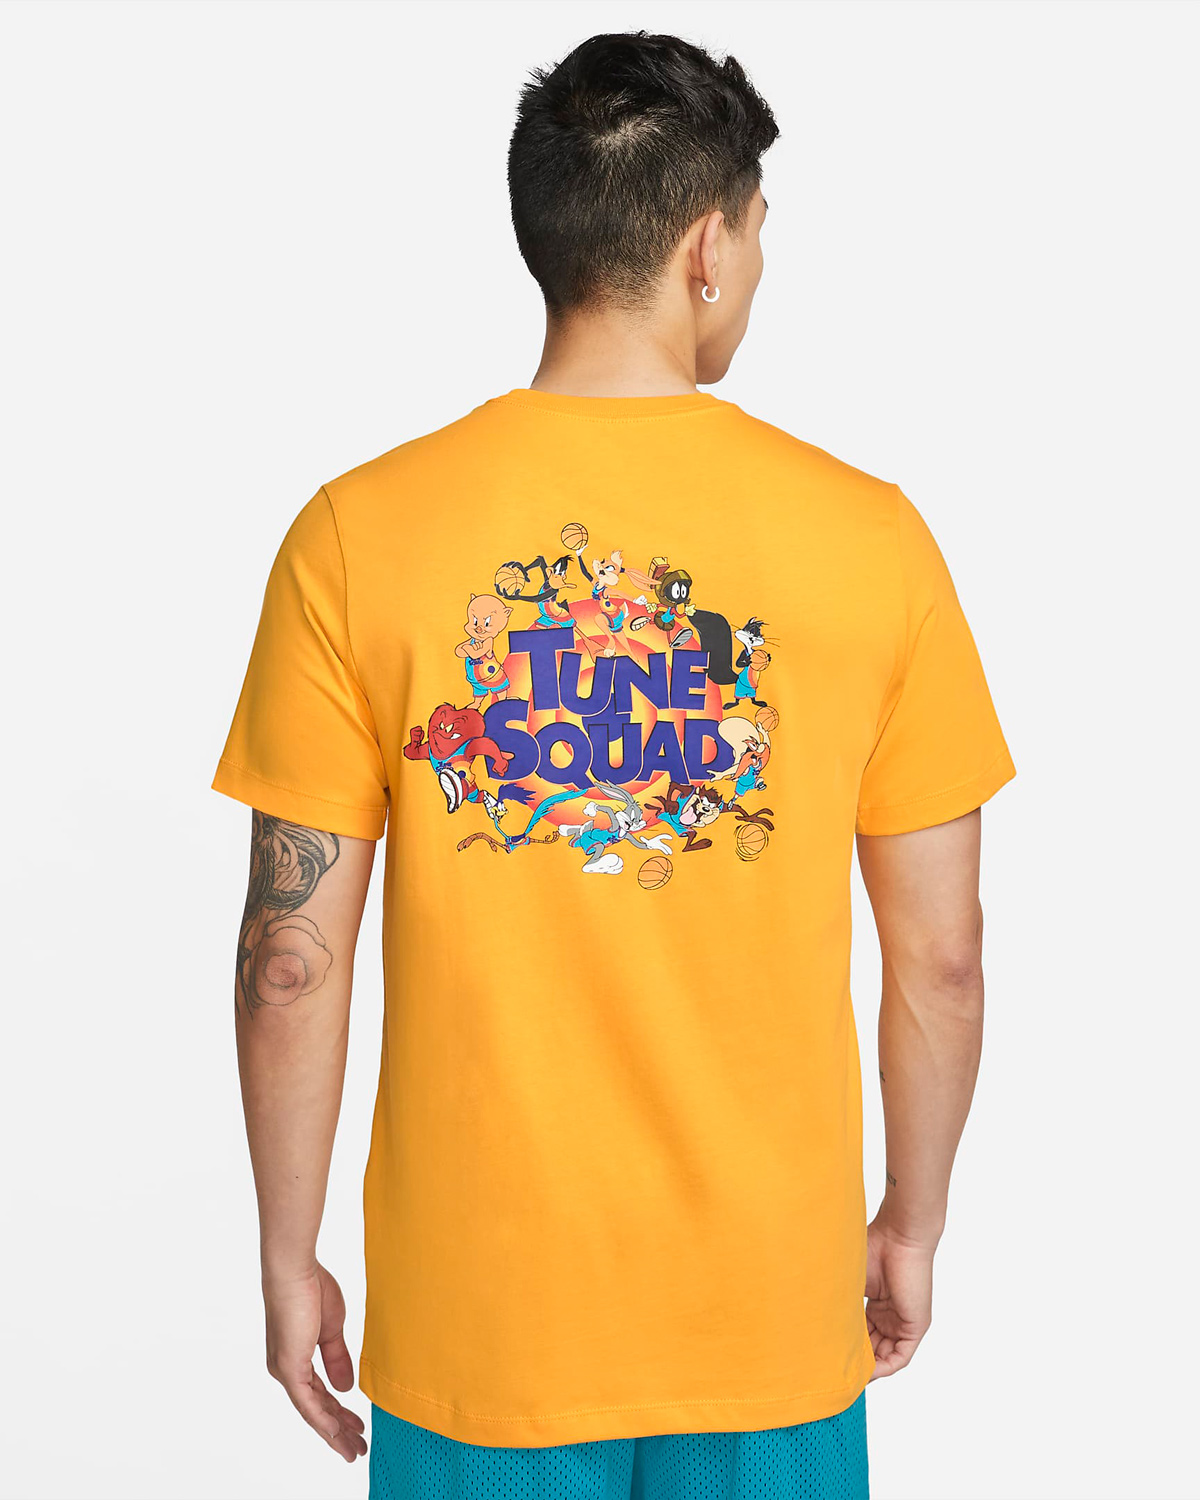 nike-space-jam-a-new-legacy-tune-squad-t-shirt-yellow-2